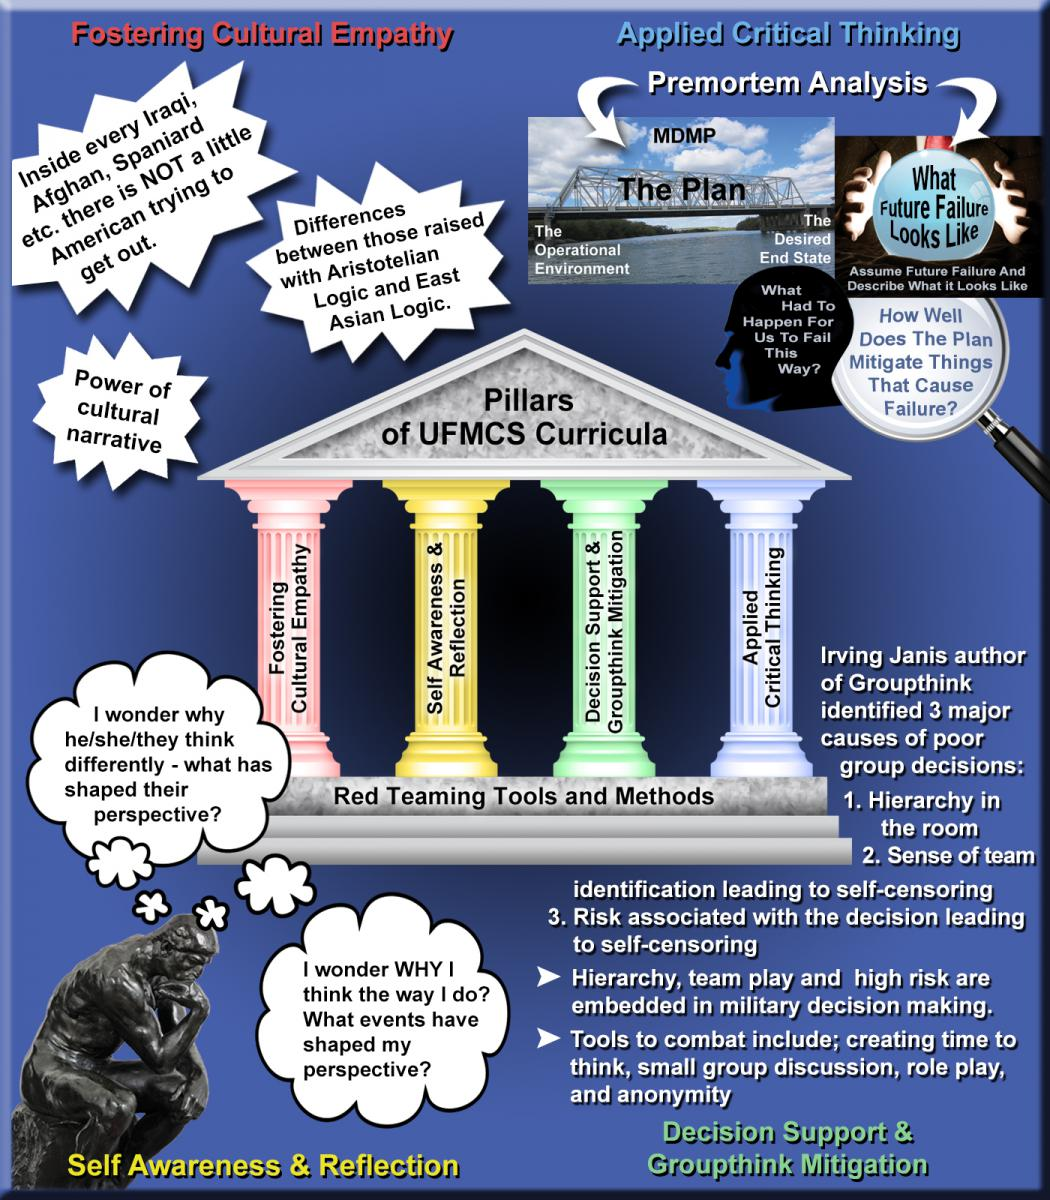 Pillars of UFMCS Curricula